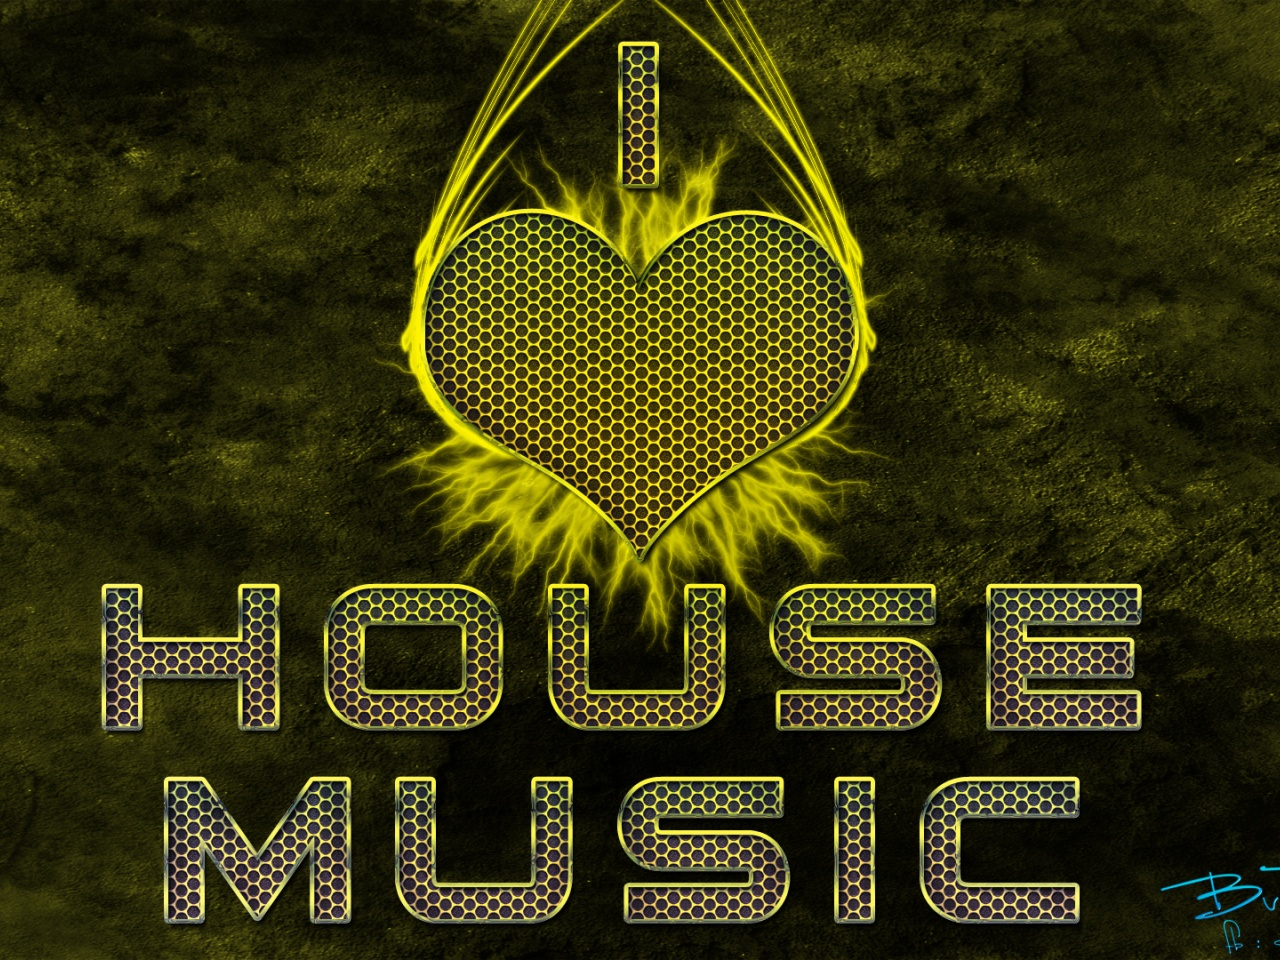 1280x960 I love house music